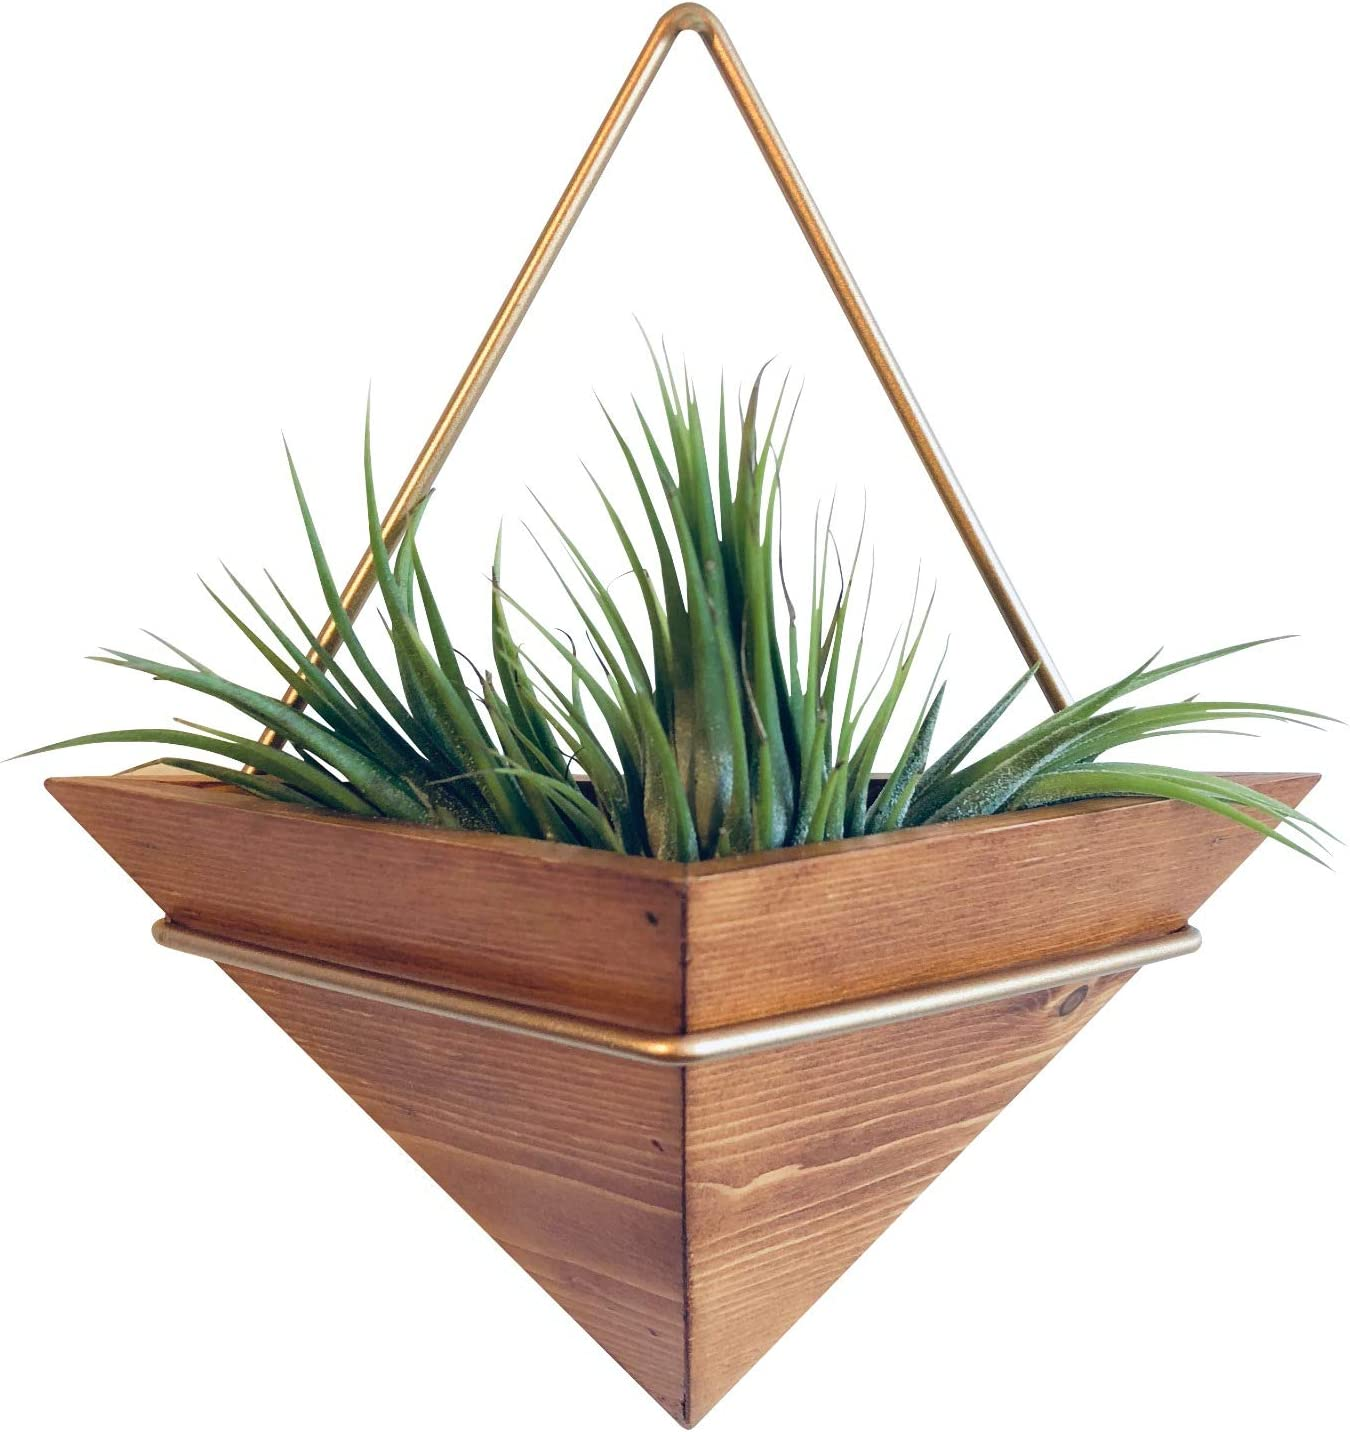 Artisanal Geometric Air Plant Holder – Made From, Sustainably Sourced Wood – Minimalist Style & Easy­To­Hang Design – Ethical Geometric Wall Decor Air Plant